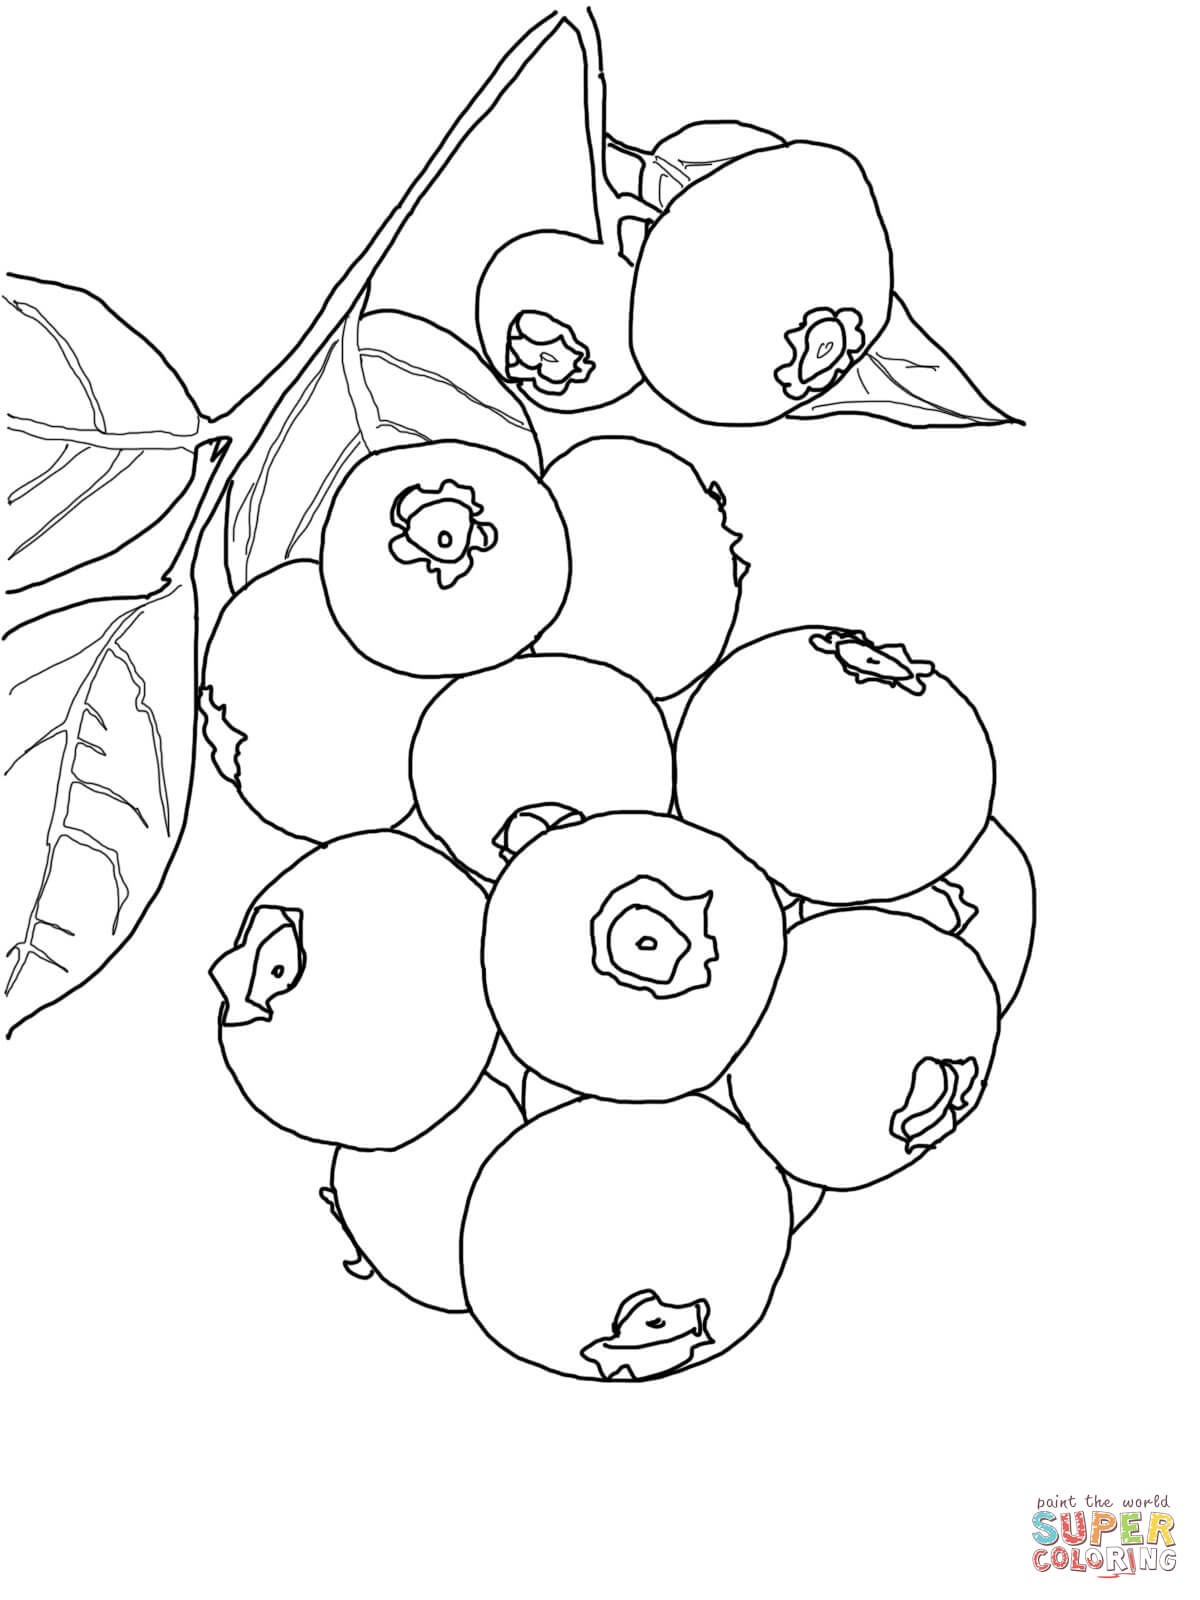 Blueberries Clipart Black And White Blueberries Black And